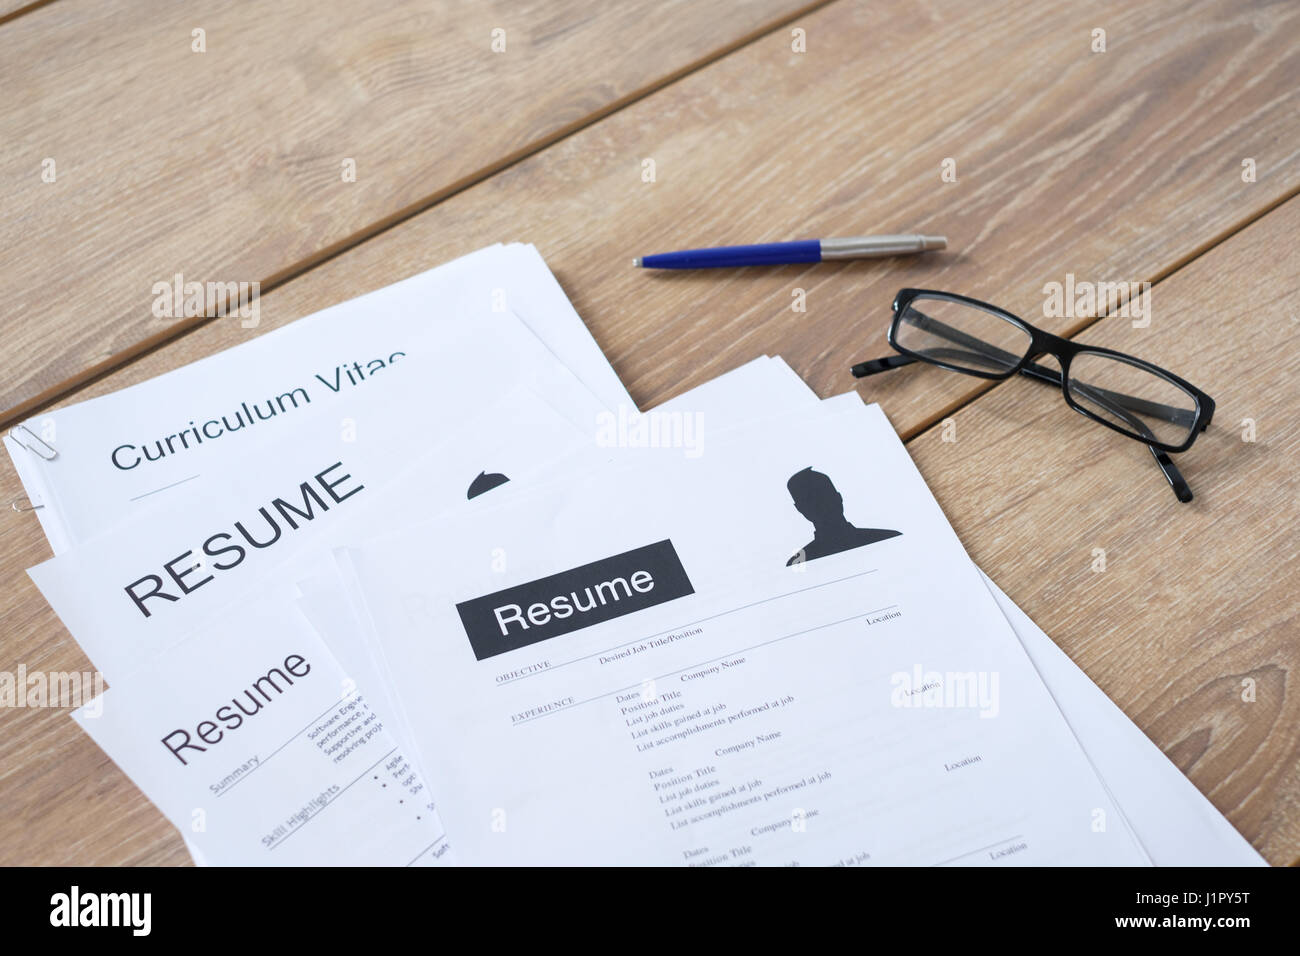 Resume applications on wooden desk ready to be reviewed - Stock Image